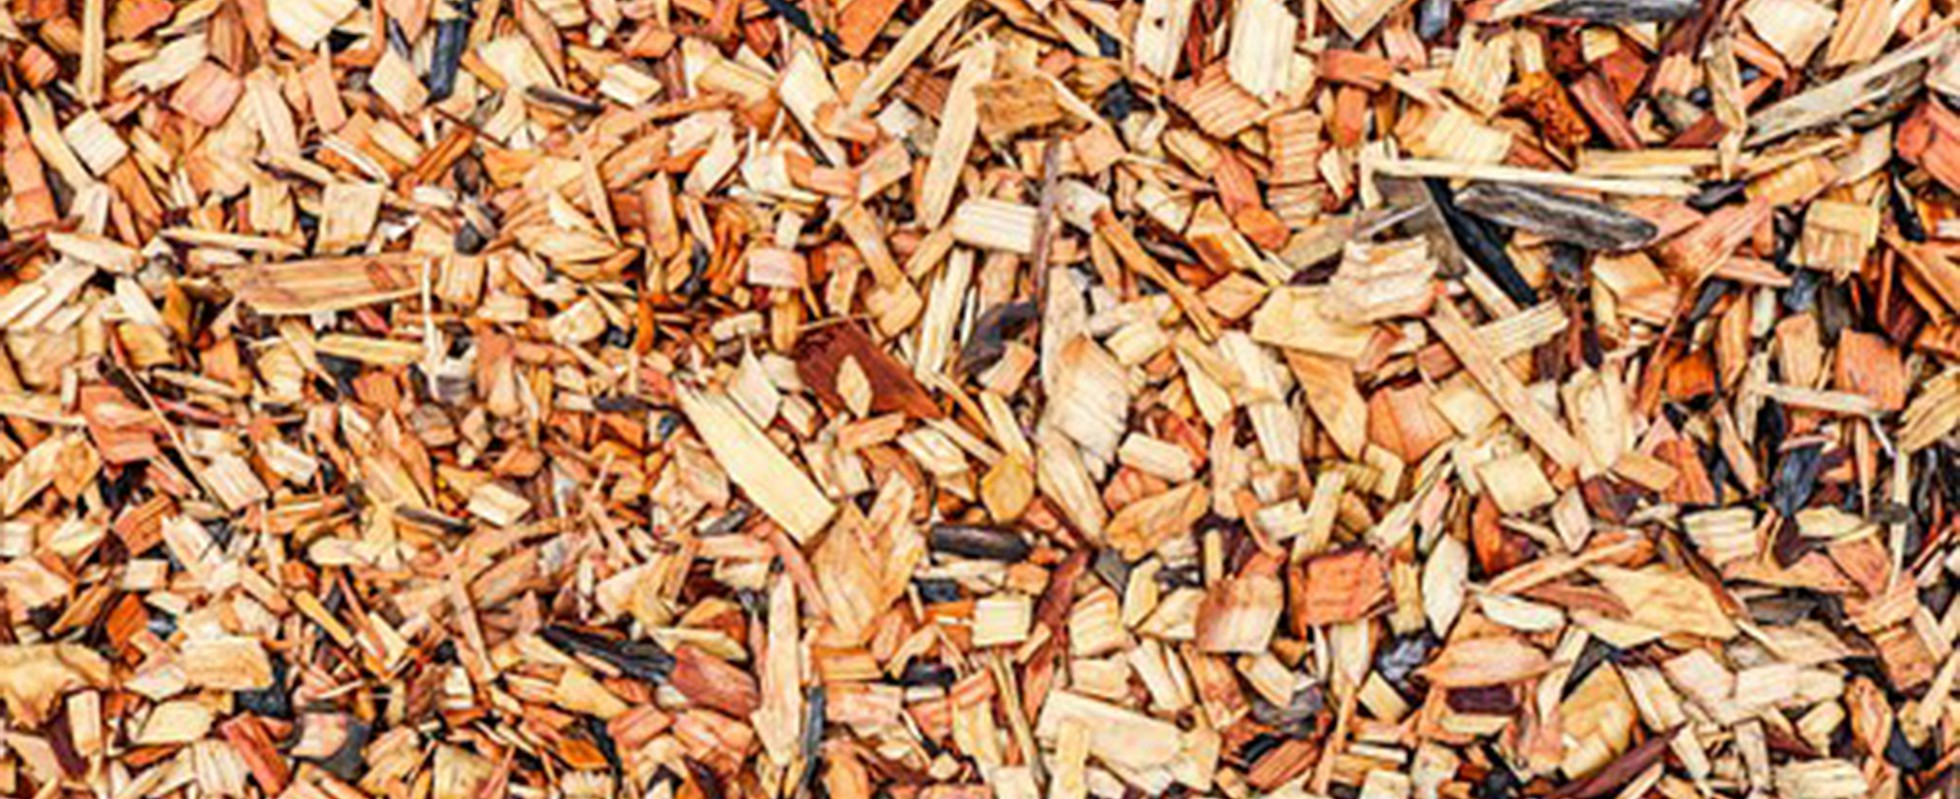 Bark chips spread out level on the soil to act as a mulch.